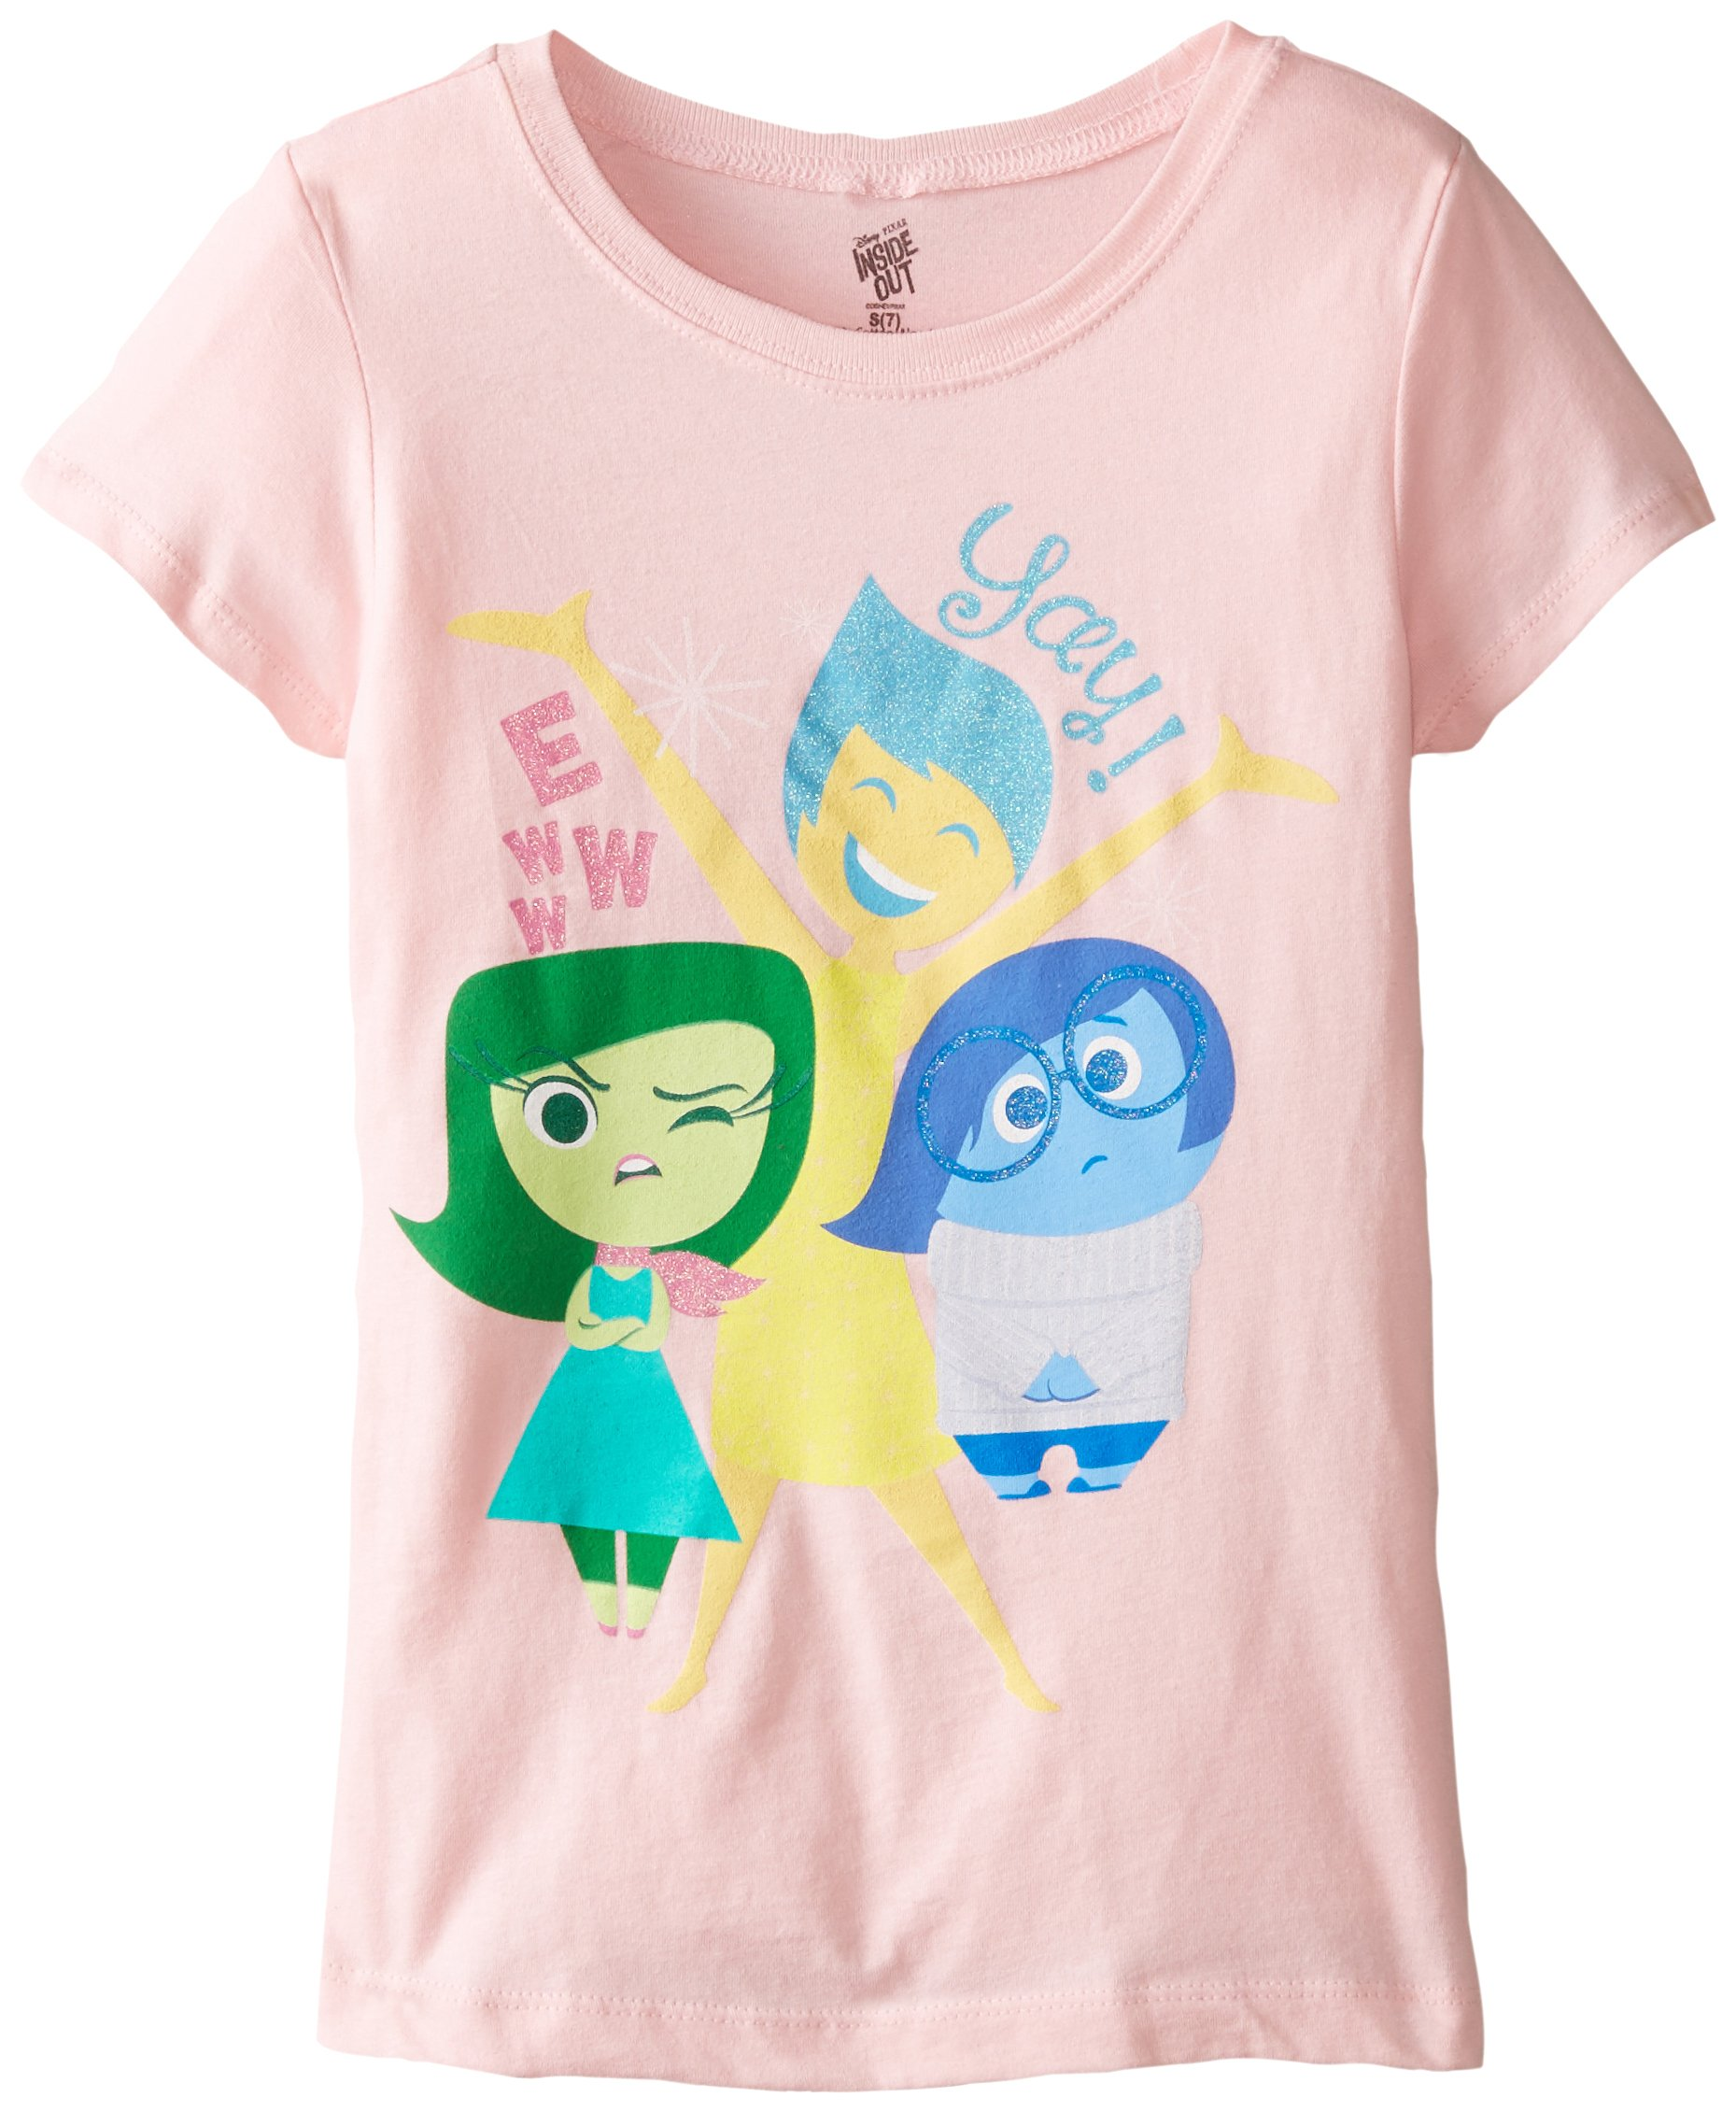 Girls Disney Inside Out Ewwww Yay Disgust Joy and Sadness Tee in Light Pink